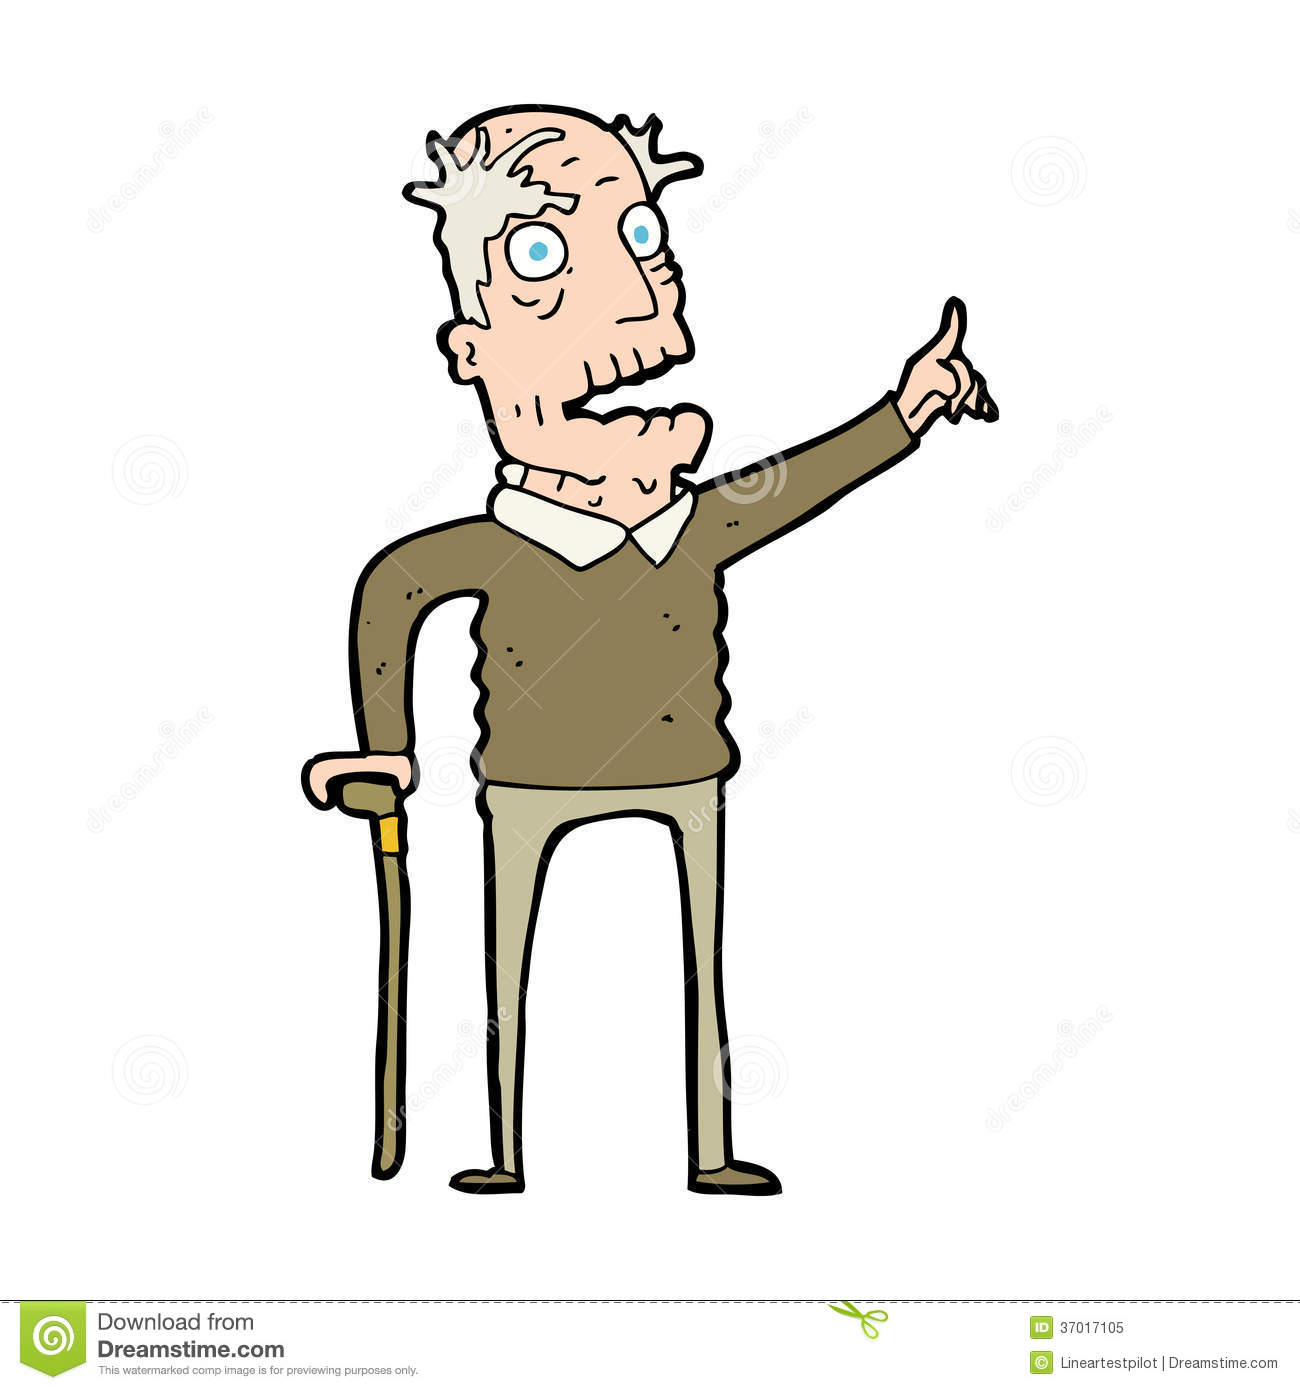 Cartoon Old Man With Walking Stick Royalty Free Stock Photo - Image ... Old Man Walking Cartoon